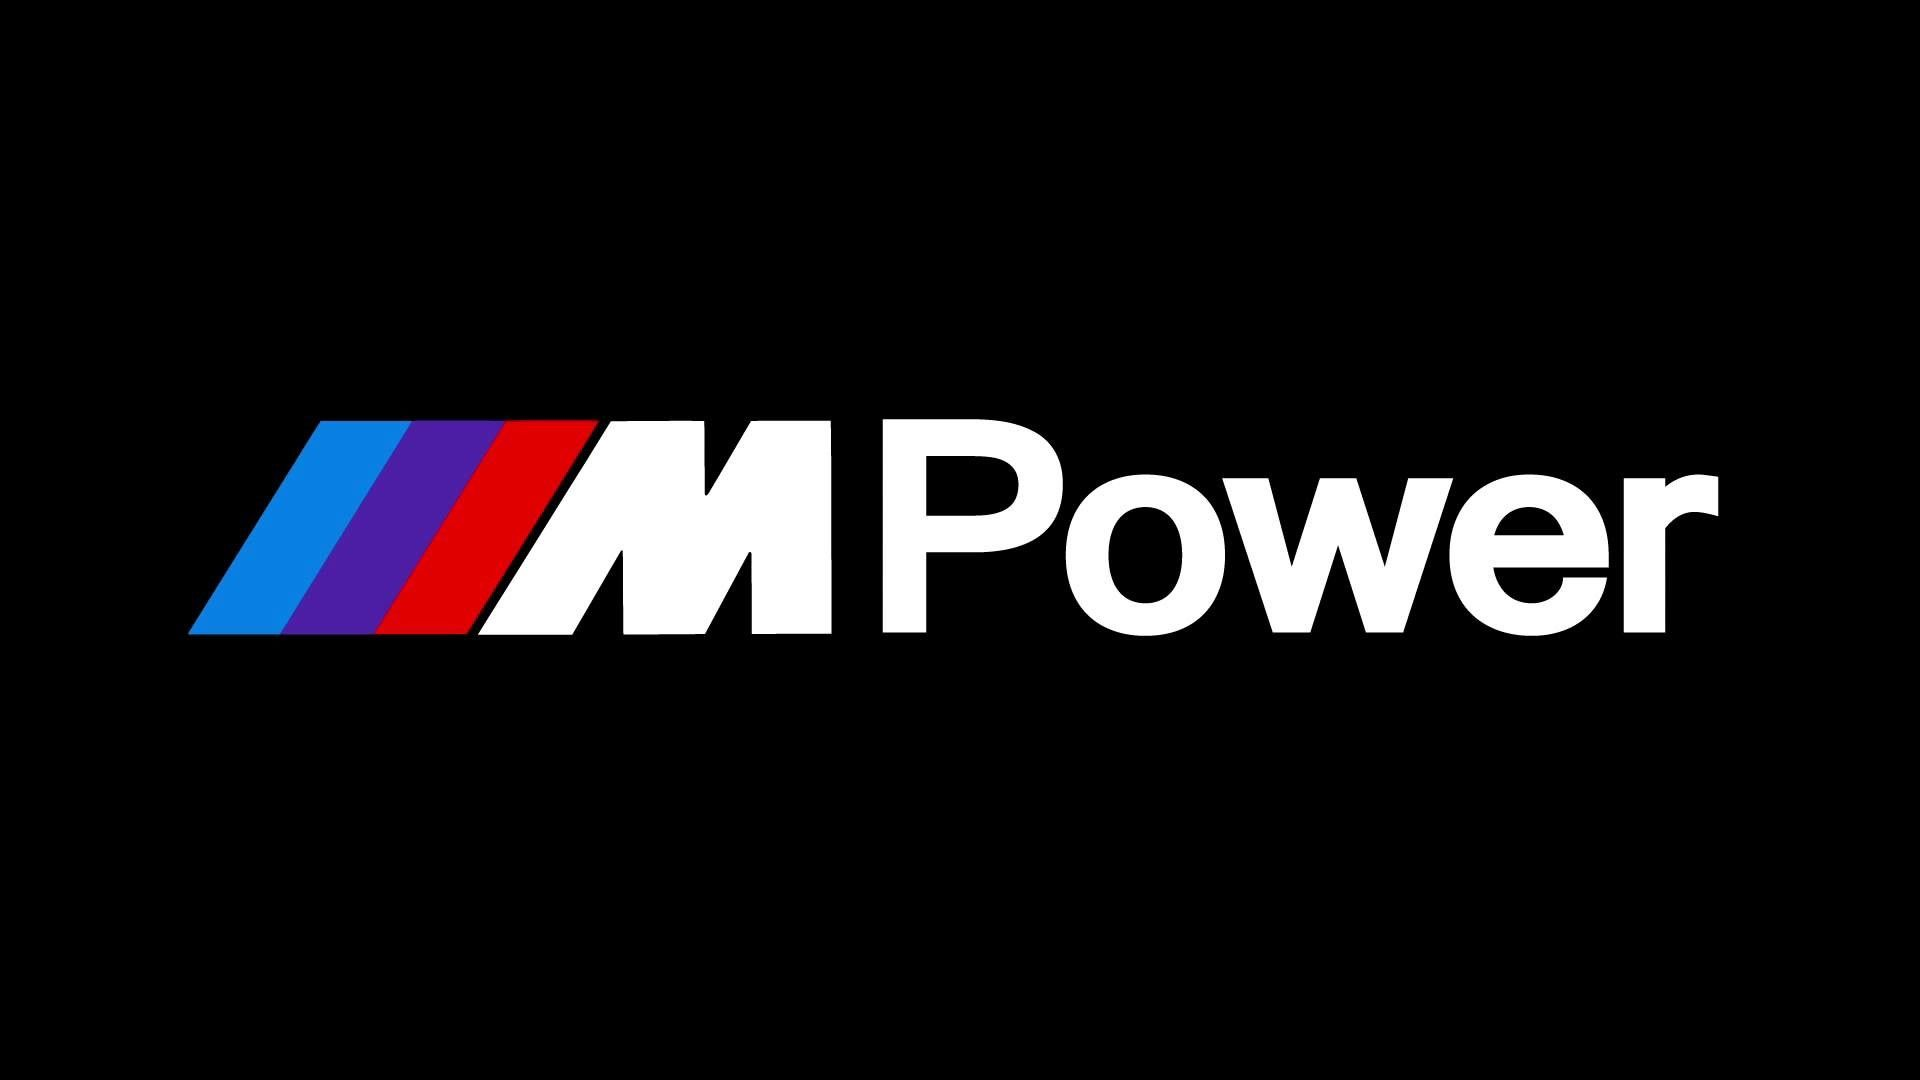 BMW M Power Wallpapers